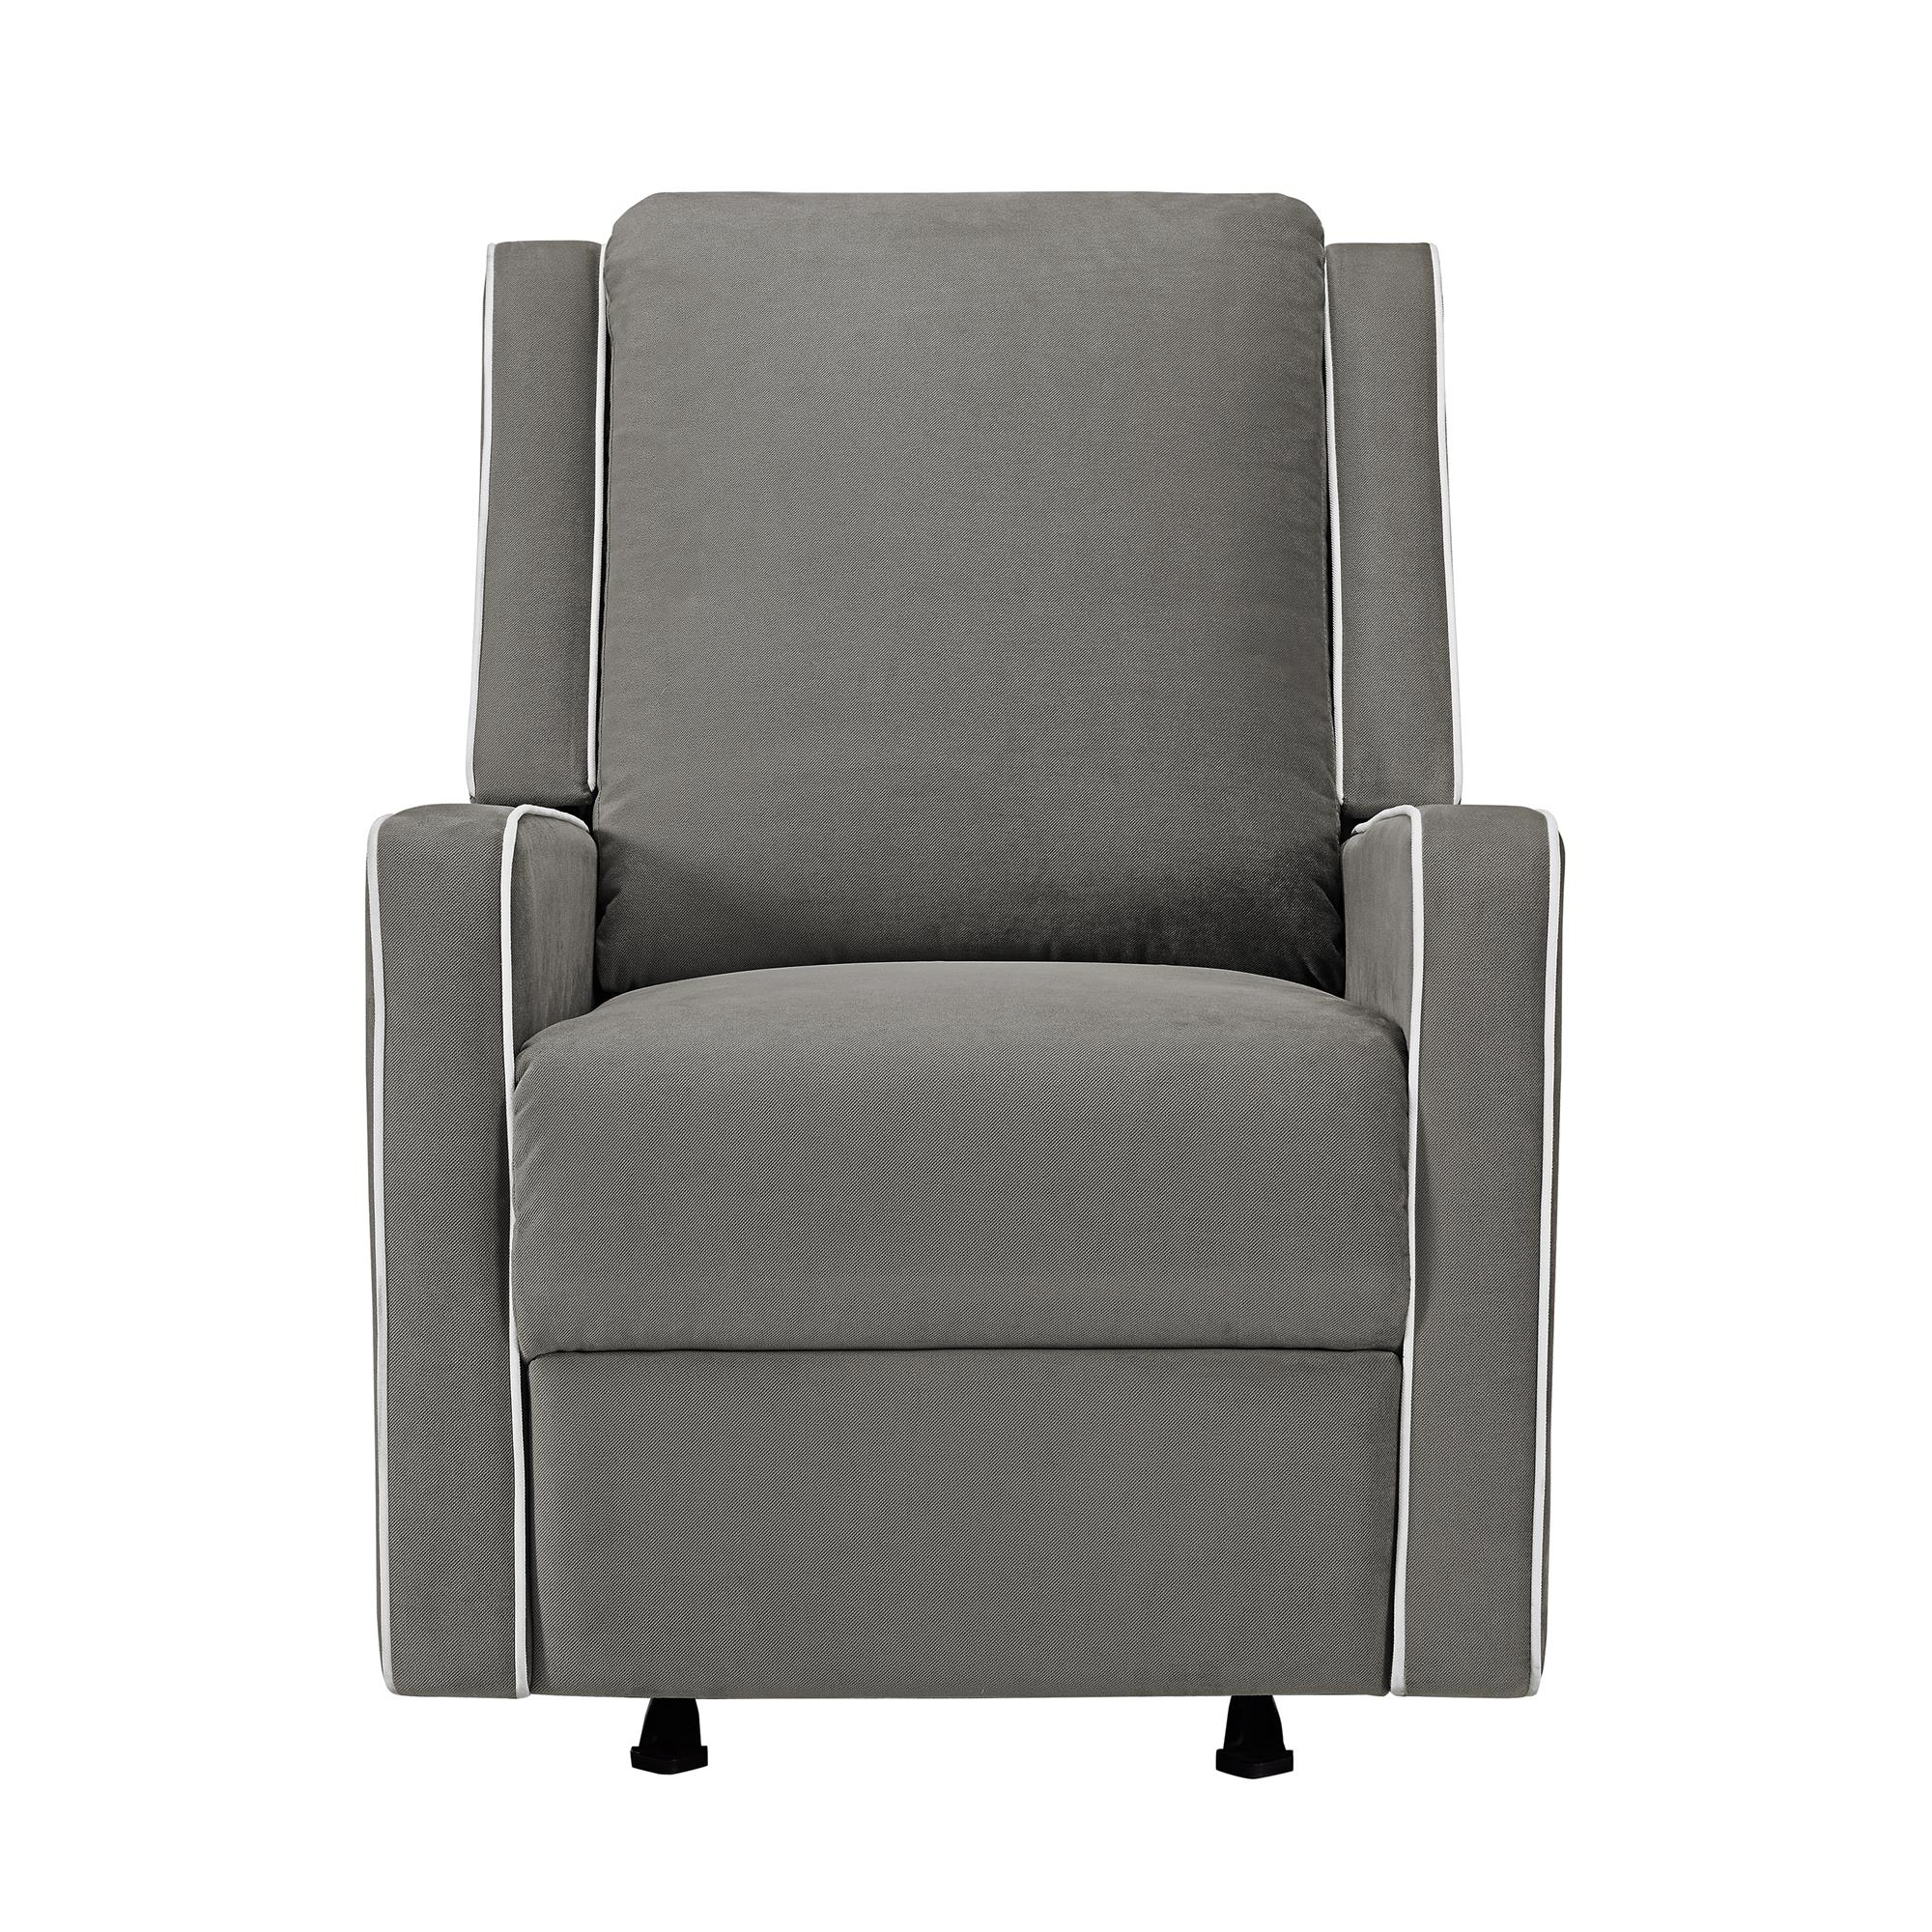 Abbey Swivel Glider Recliners Throughout Trendy Baby Relax Robyn Rocking Recliner, Graphite Grey – Walmart (Gallery 10 of 20)